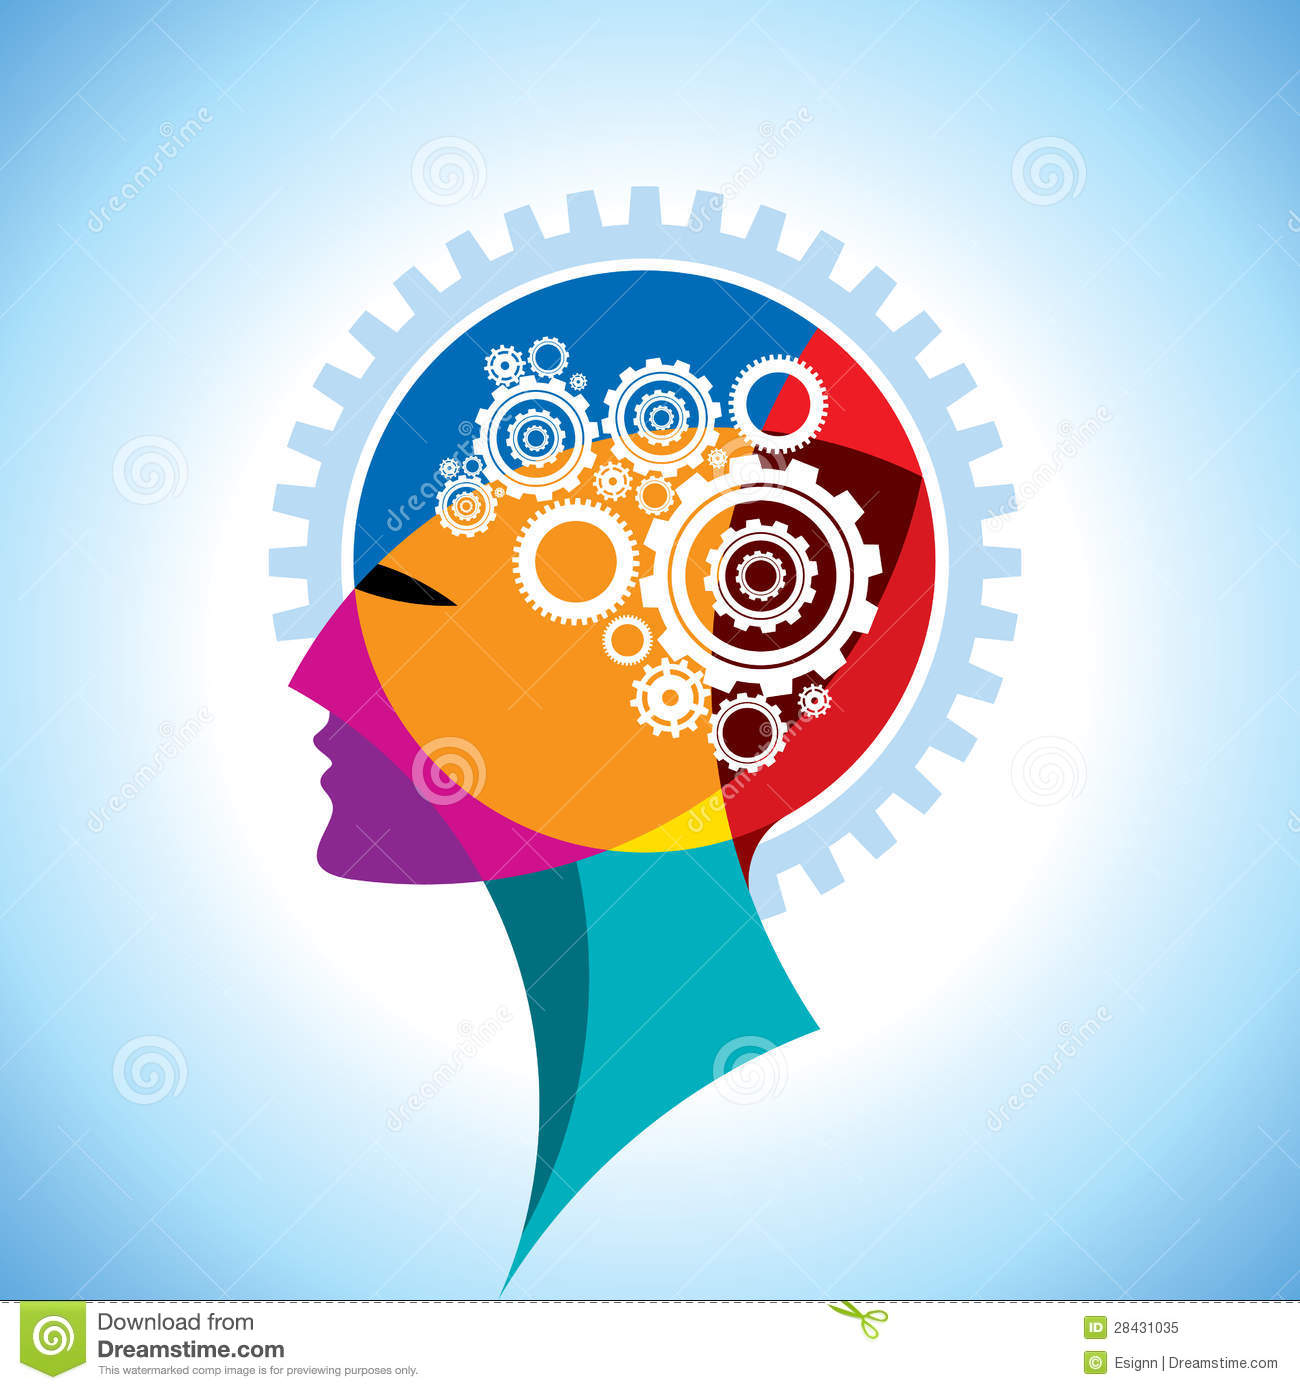 Head And Brain Gear Royalty Free Stock Photo - Image: 28431035